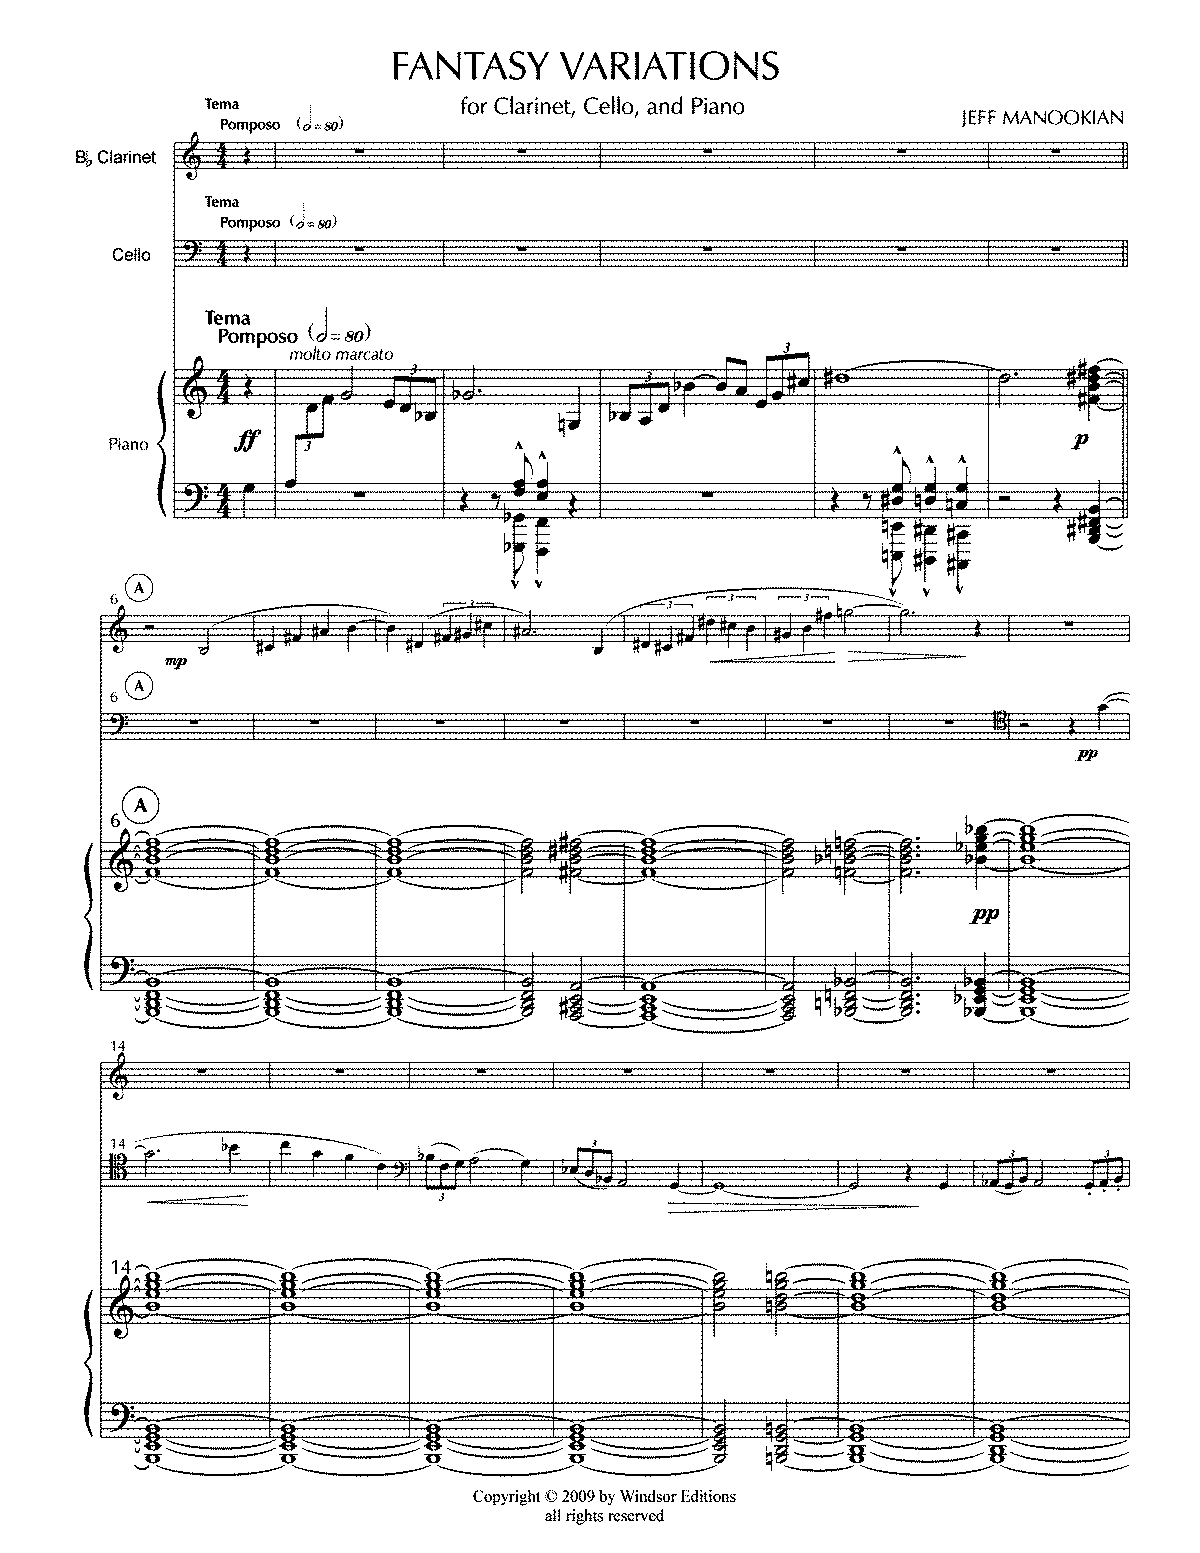 PMLP118663-JEFF MANOOKIAN - Fantasy Variations for Clarinet, Cello and Piano.pdf